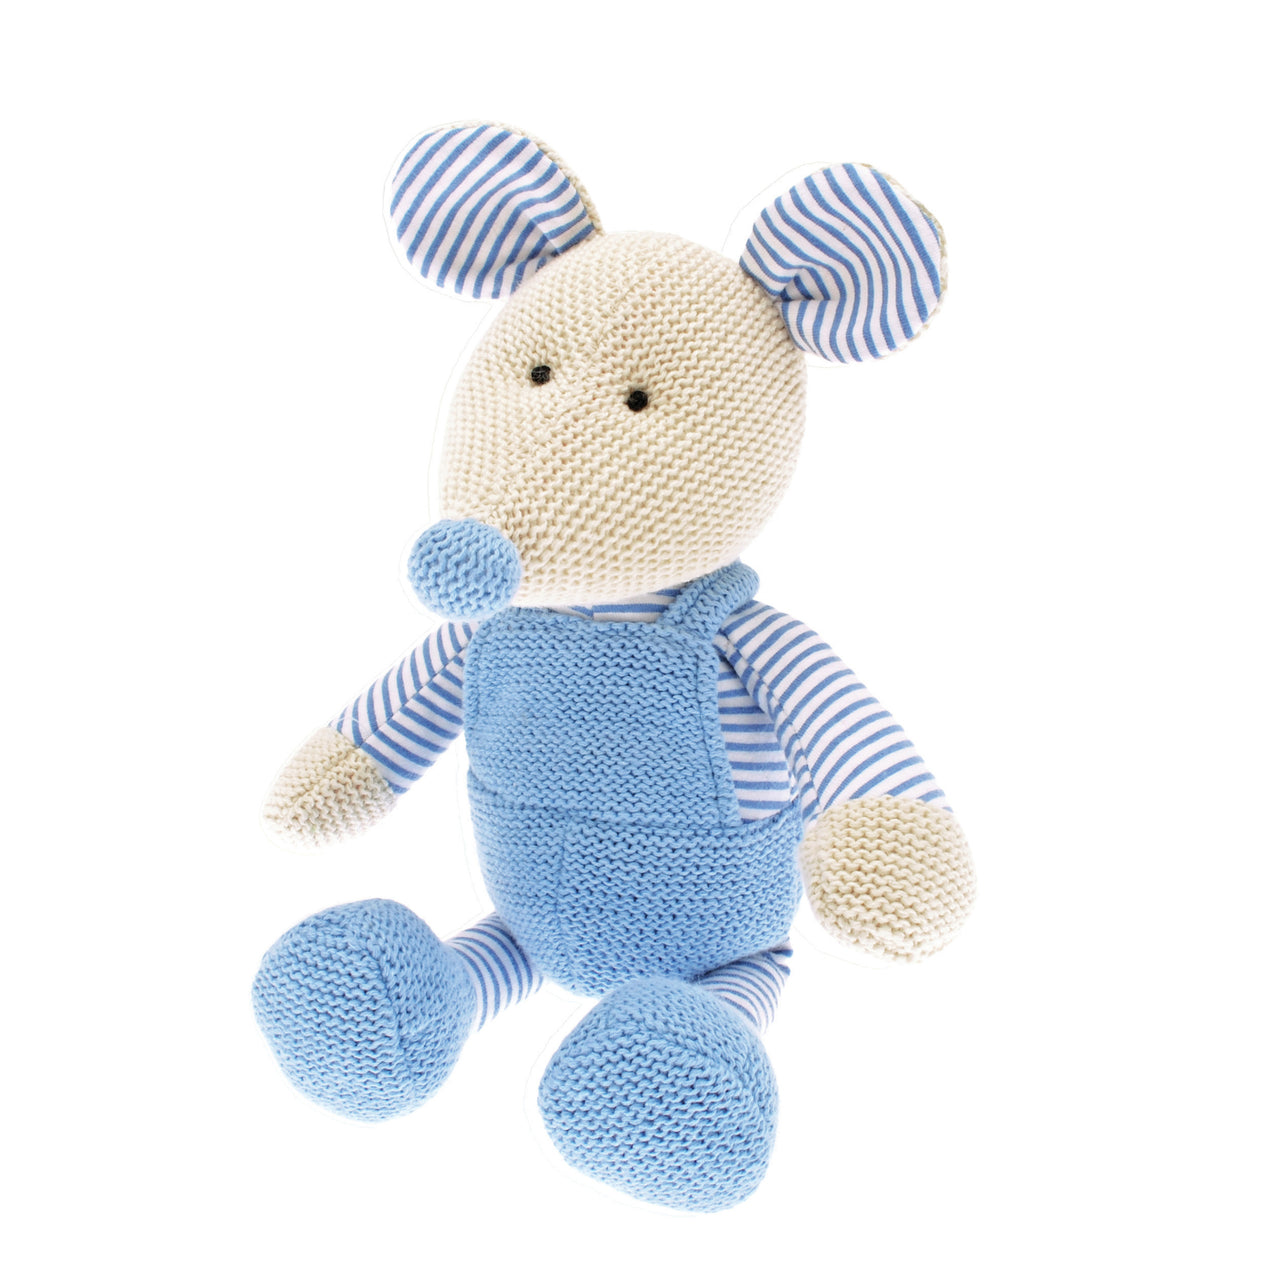 Mr Mouse Knitted Toy